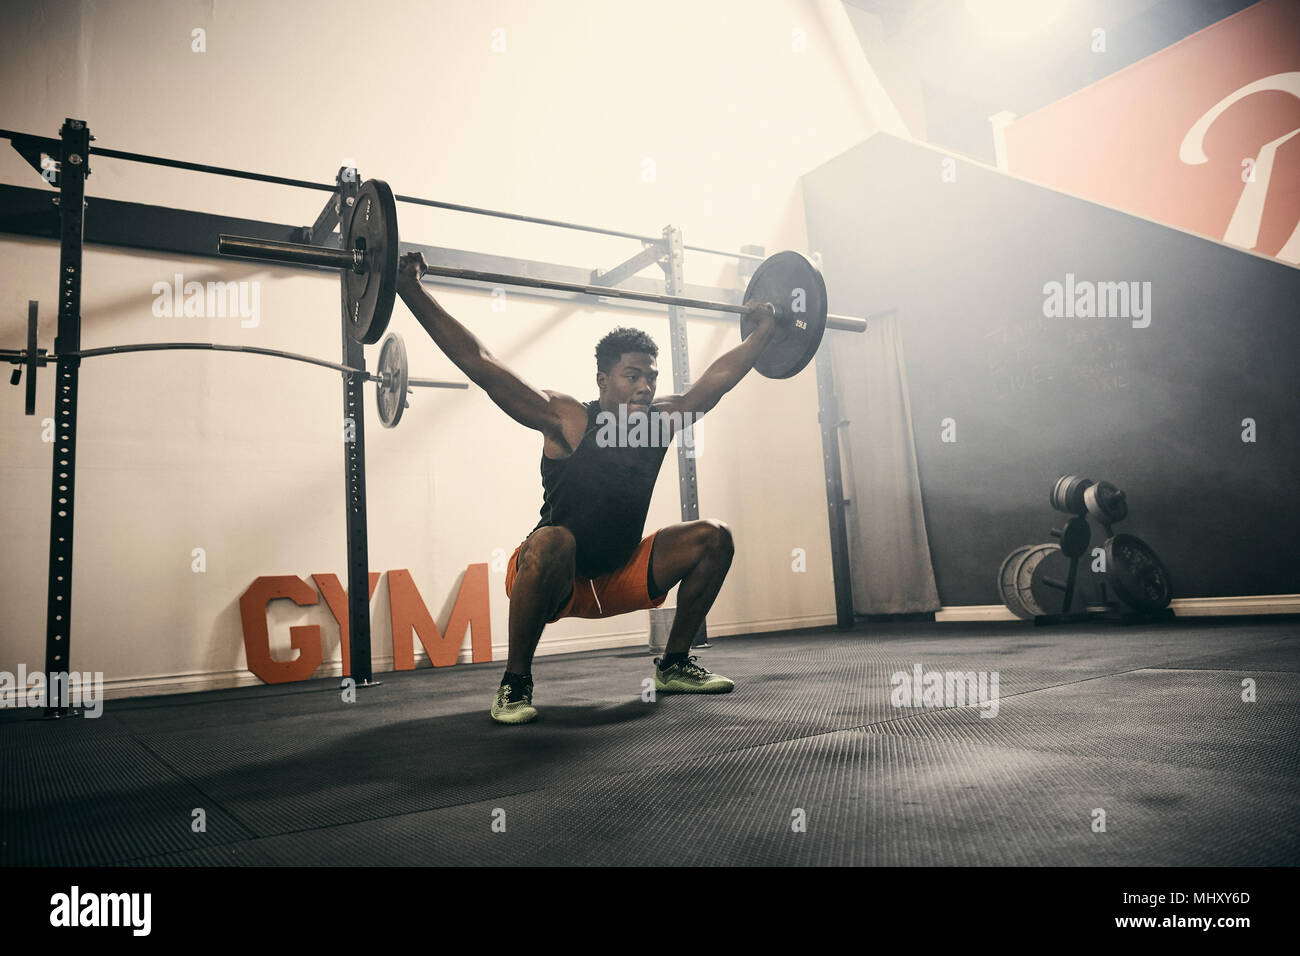 Man in gym weightlifting using barbell - Stock Image